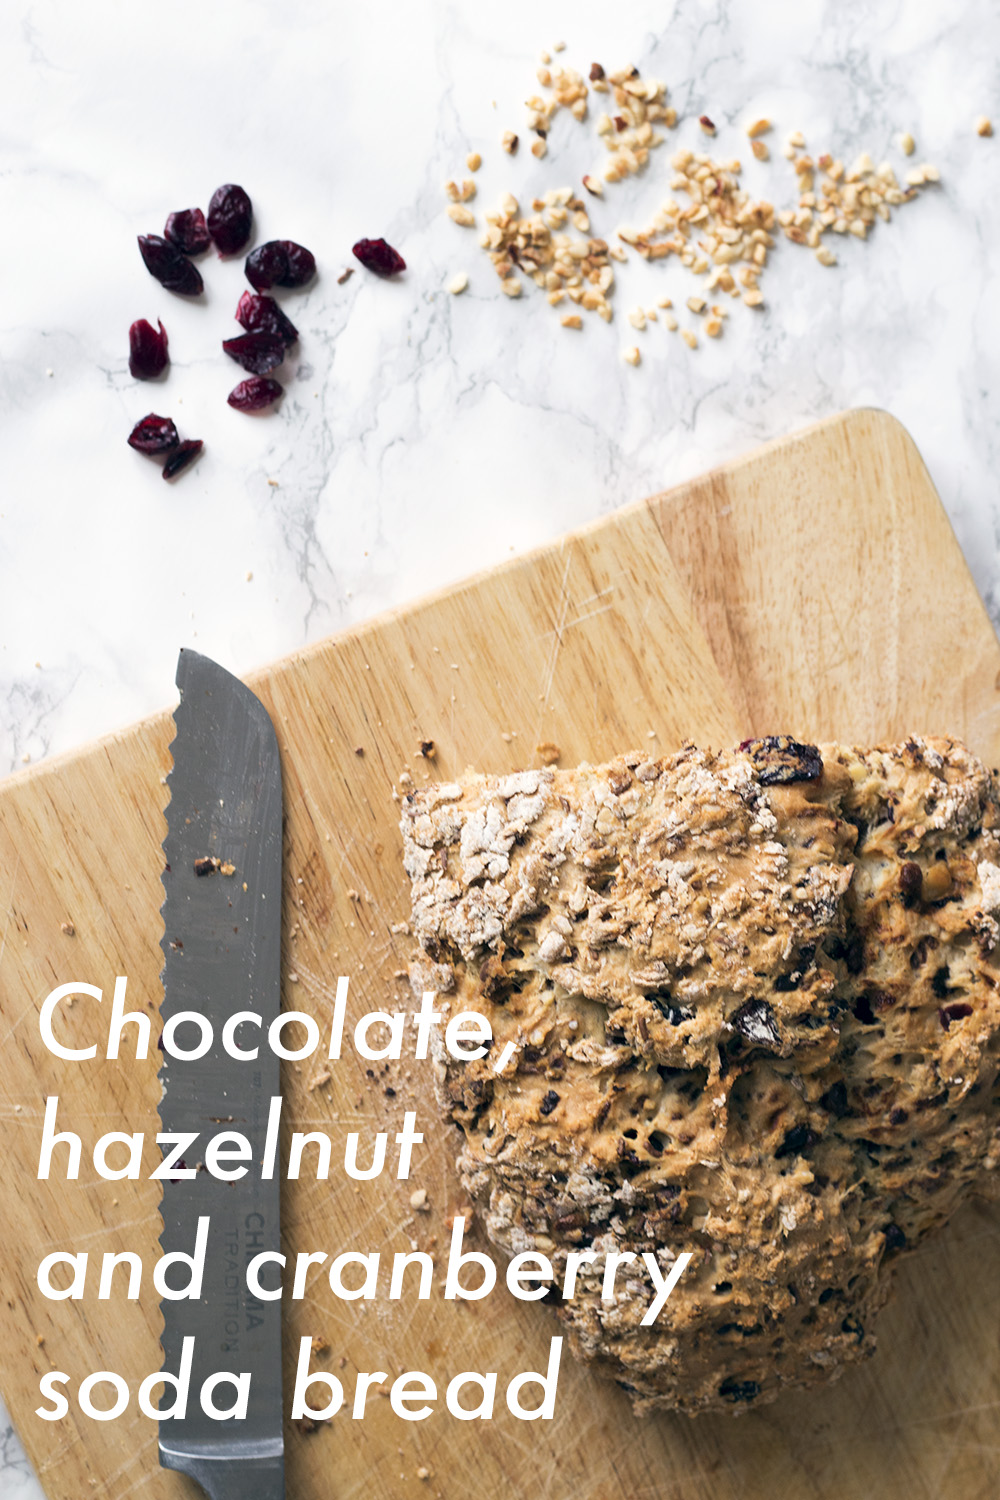 Chocolate, hazelnut and cranberry soda bread recipe